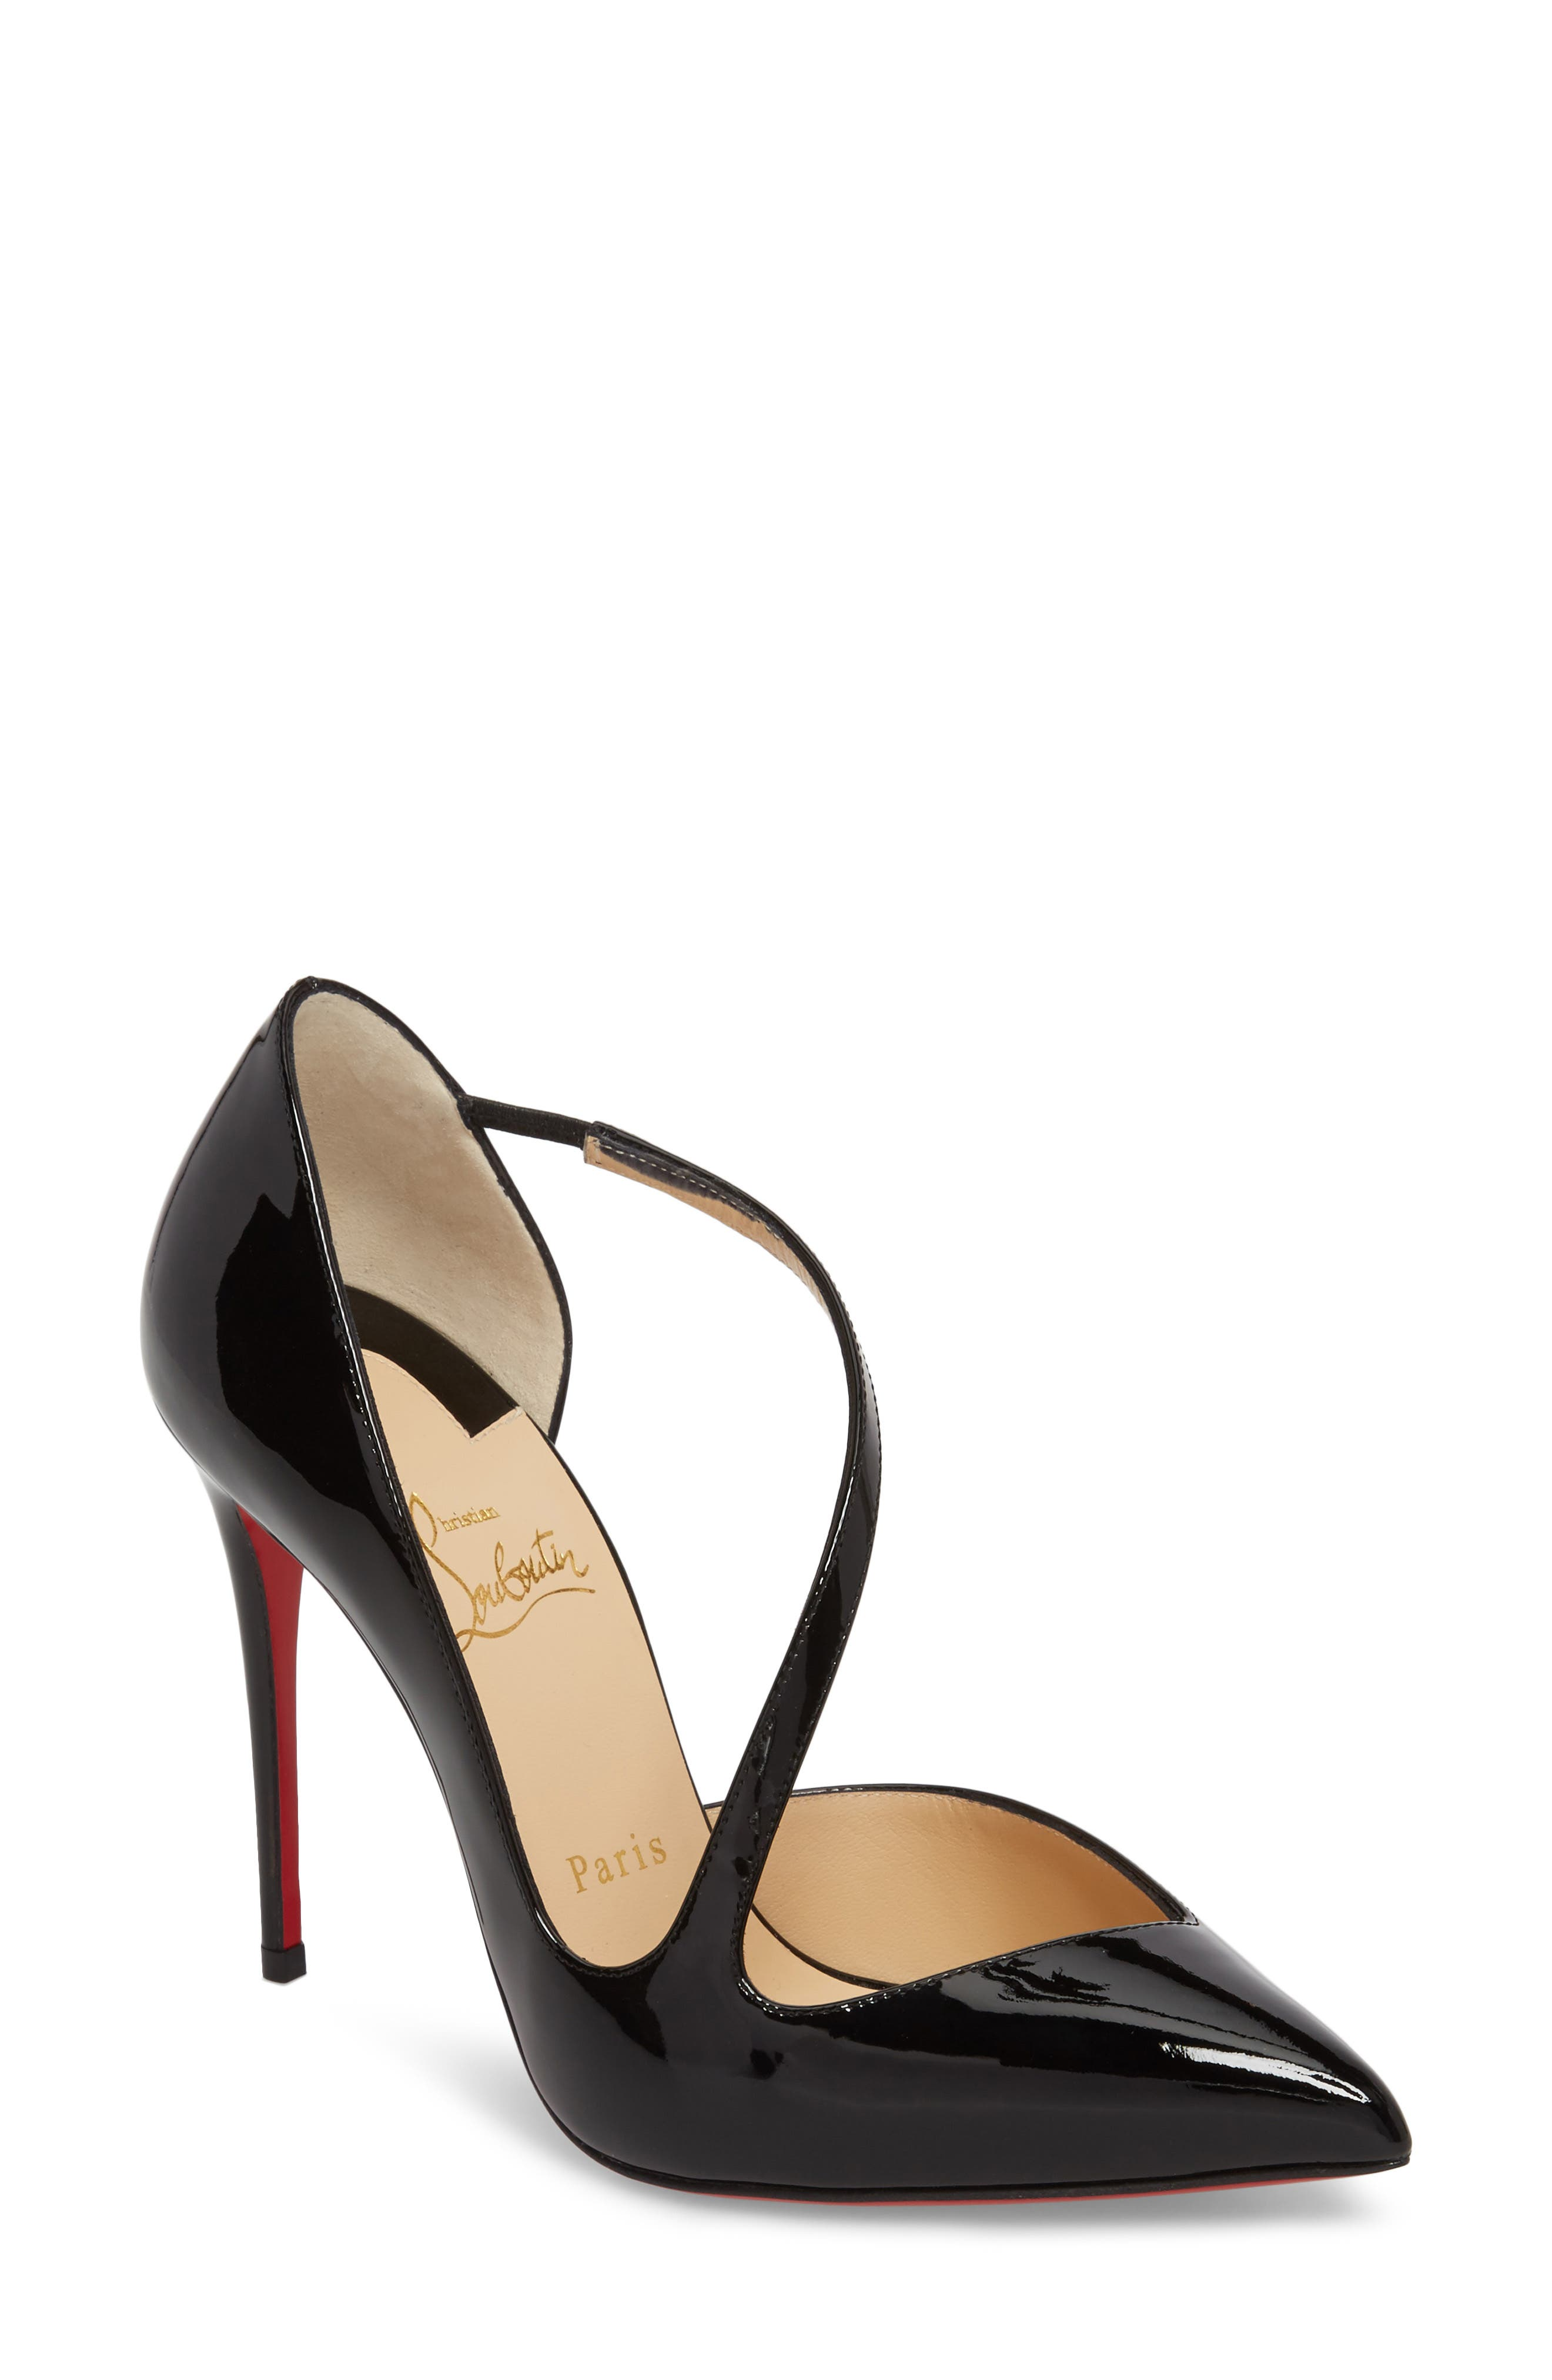 Main Image - Christian Louboutin Strappy Half d'Orsay Pump